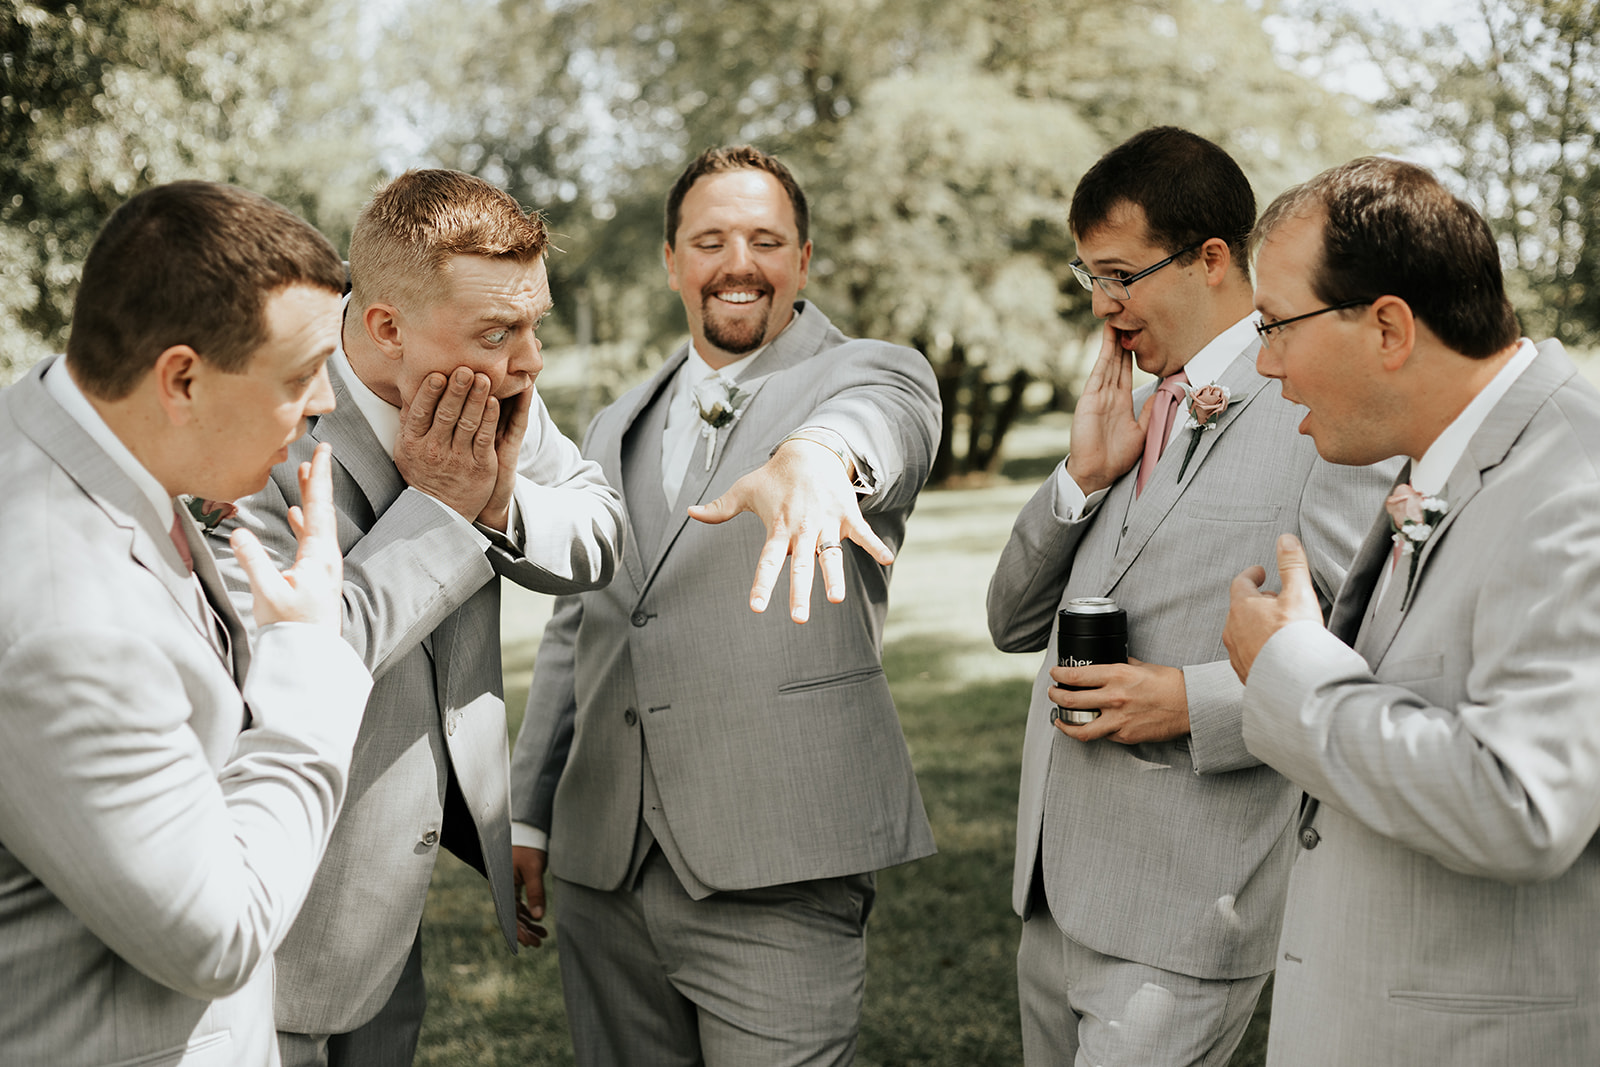 funny groom showing off ring to groomsmen photo